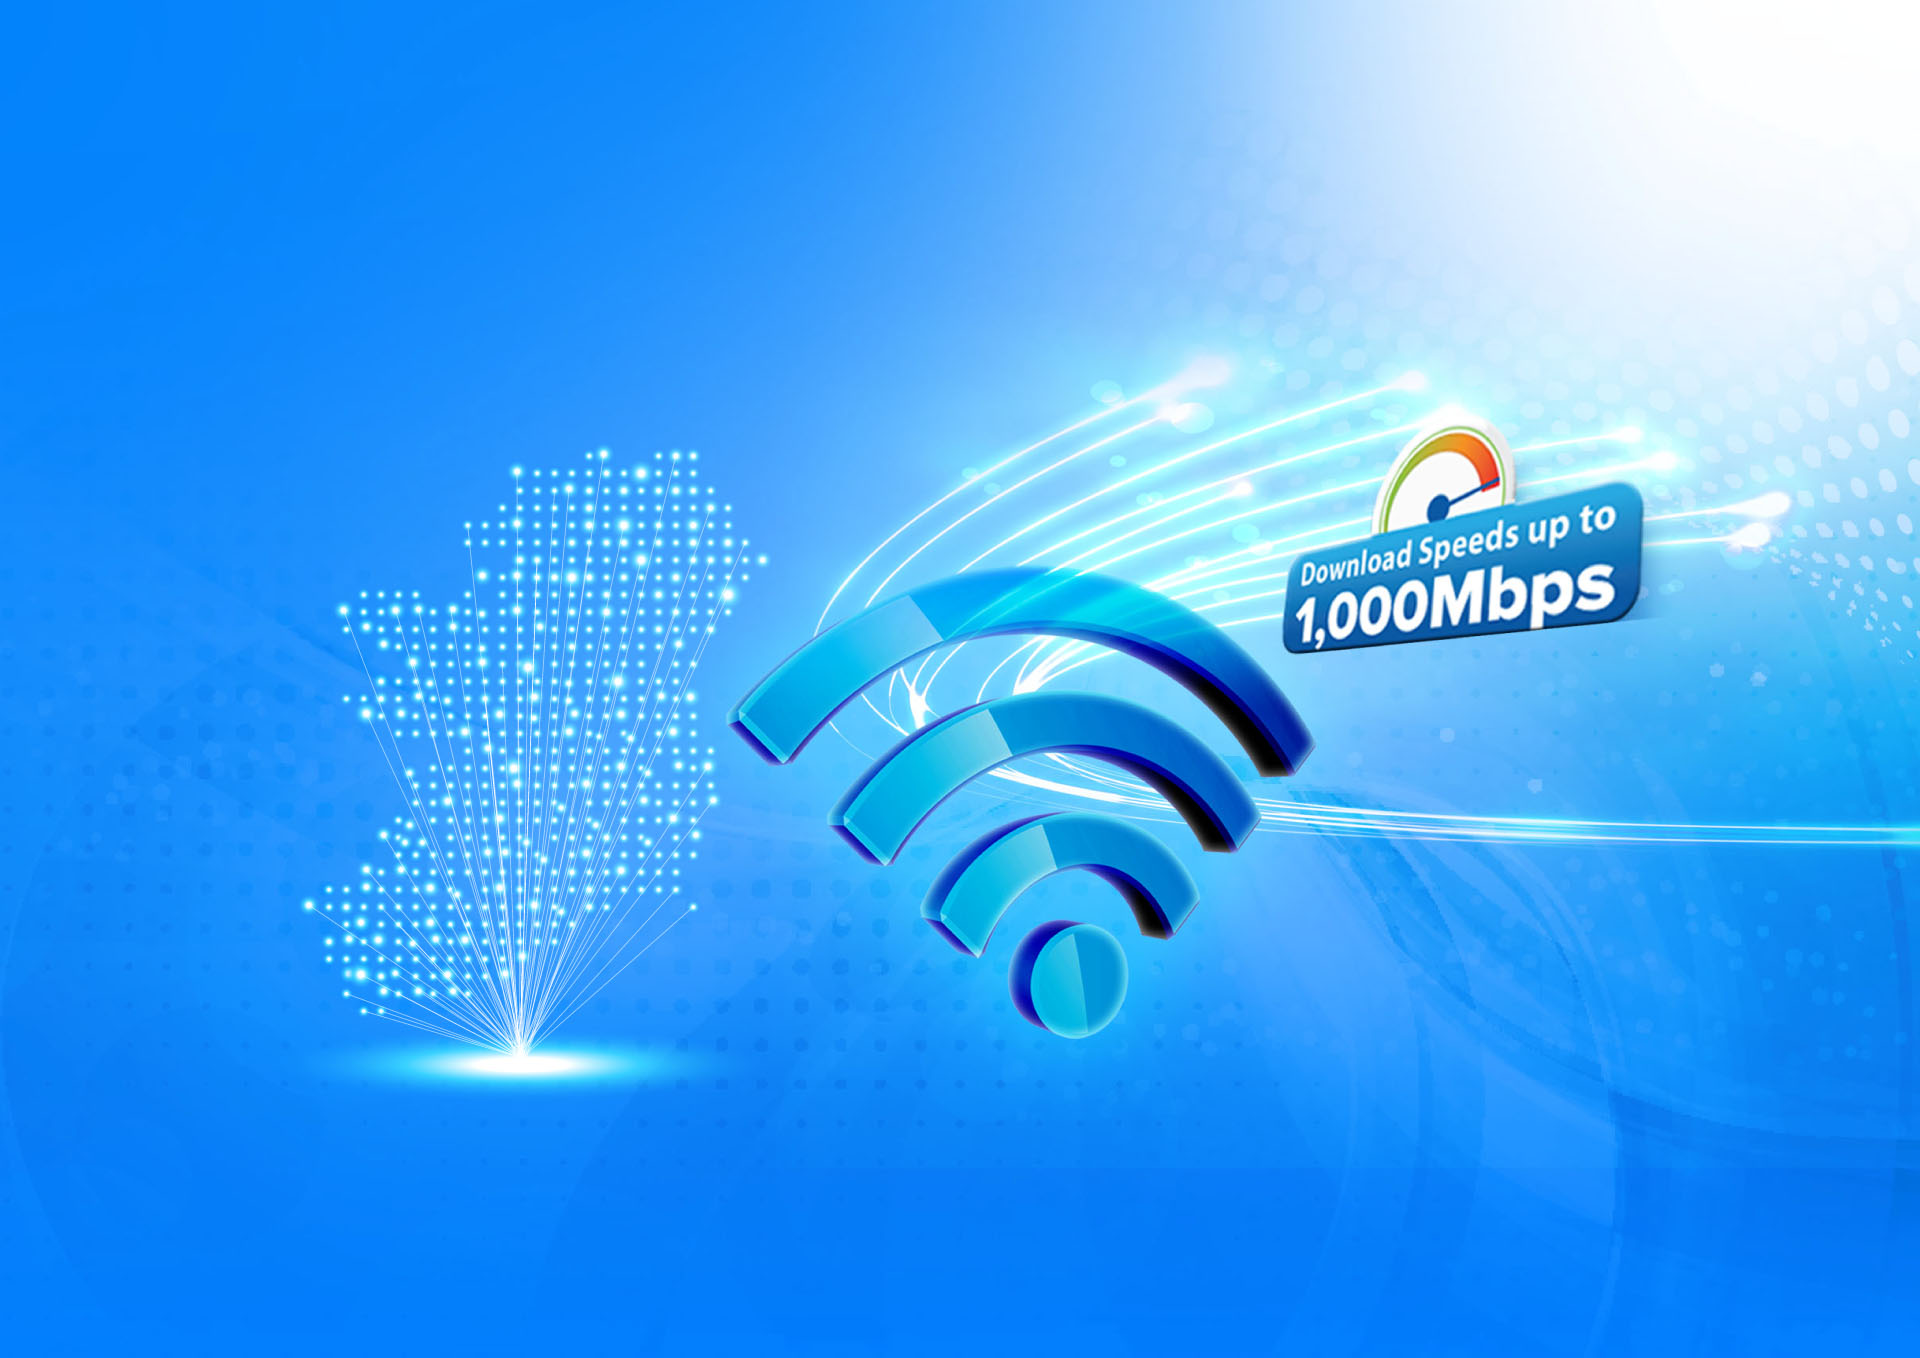 Speeds up your internet with 1000Mbps broadband from €10 p/m